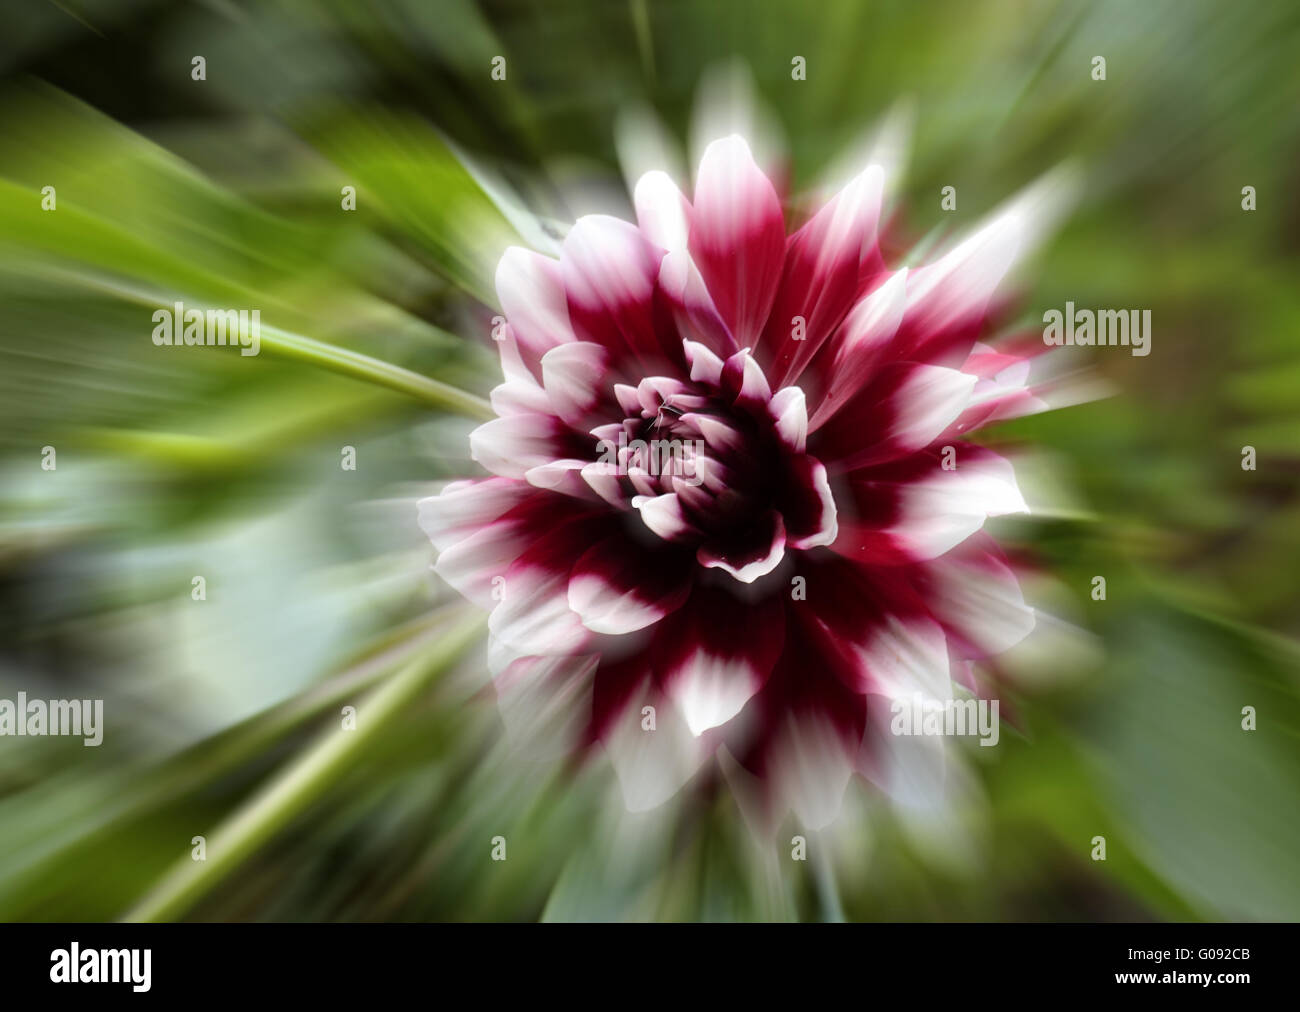 Dahlia hybrid with zoom effect - Stock Image